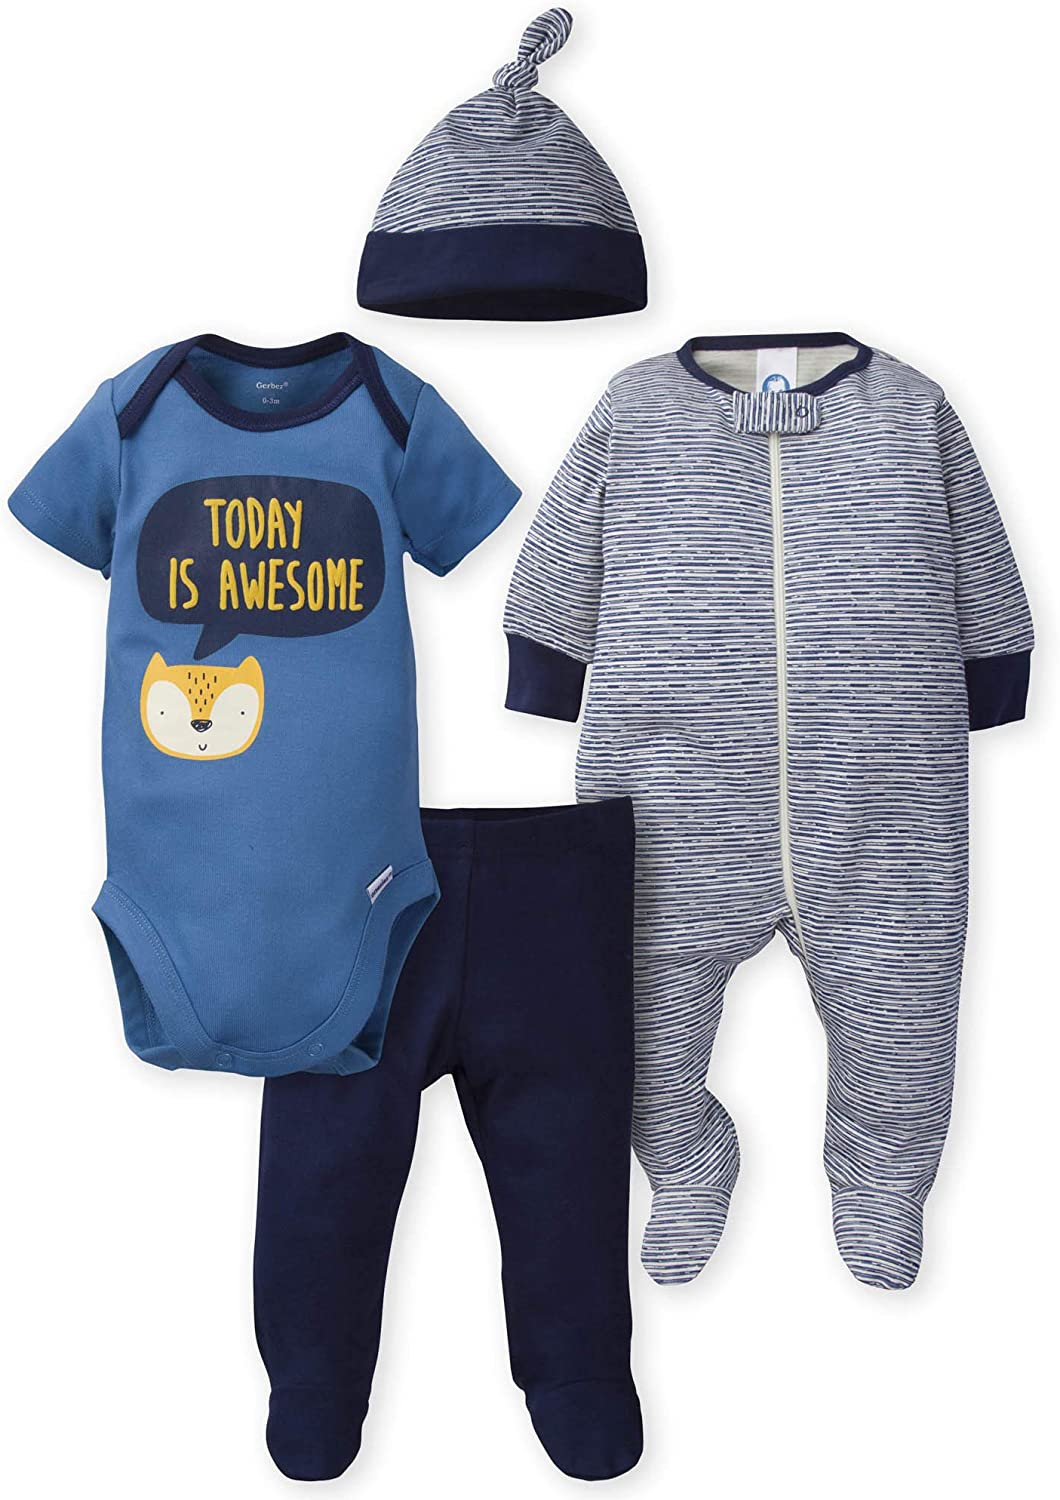 The Best Baby Boy Going Home Outfit